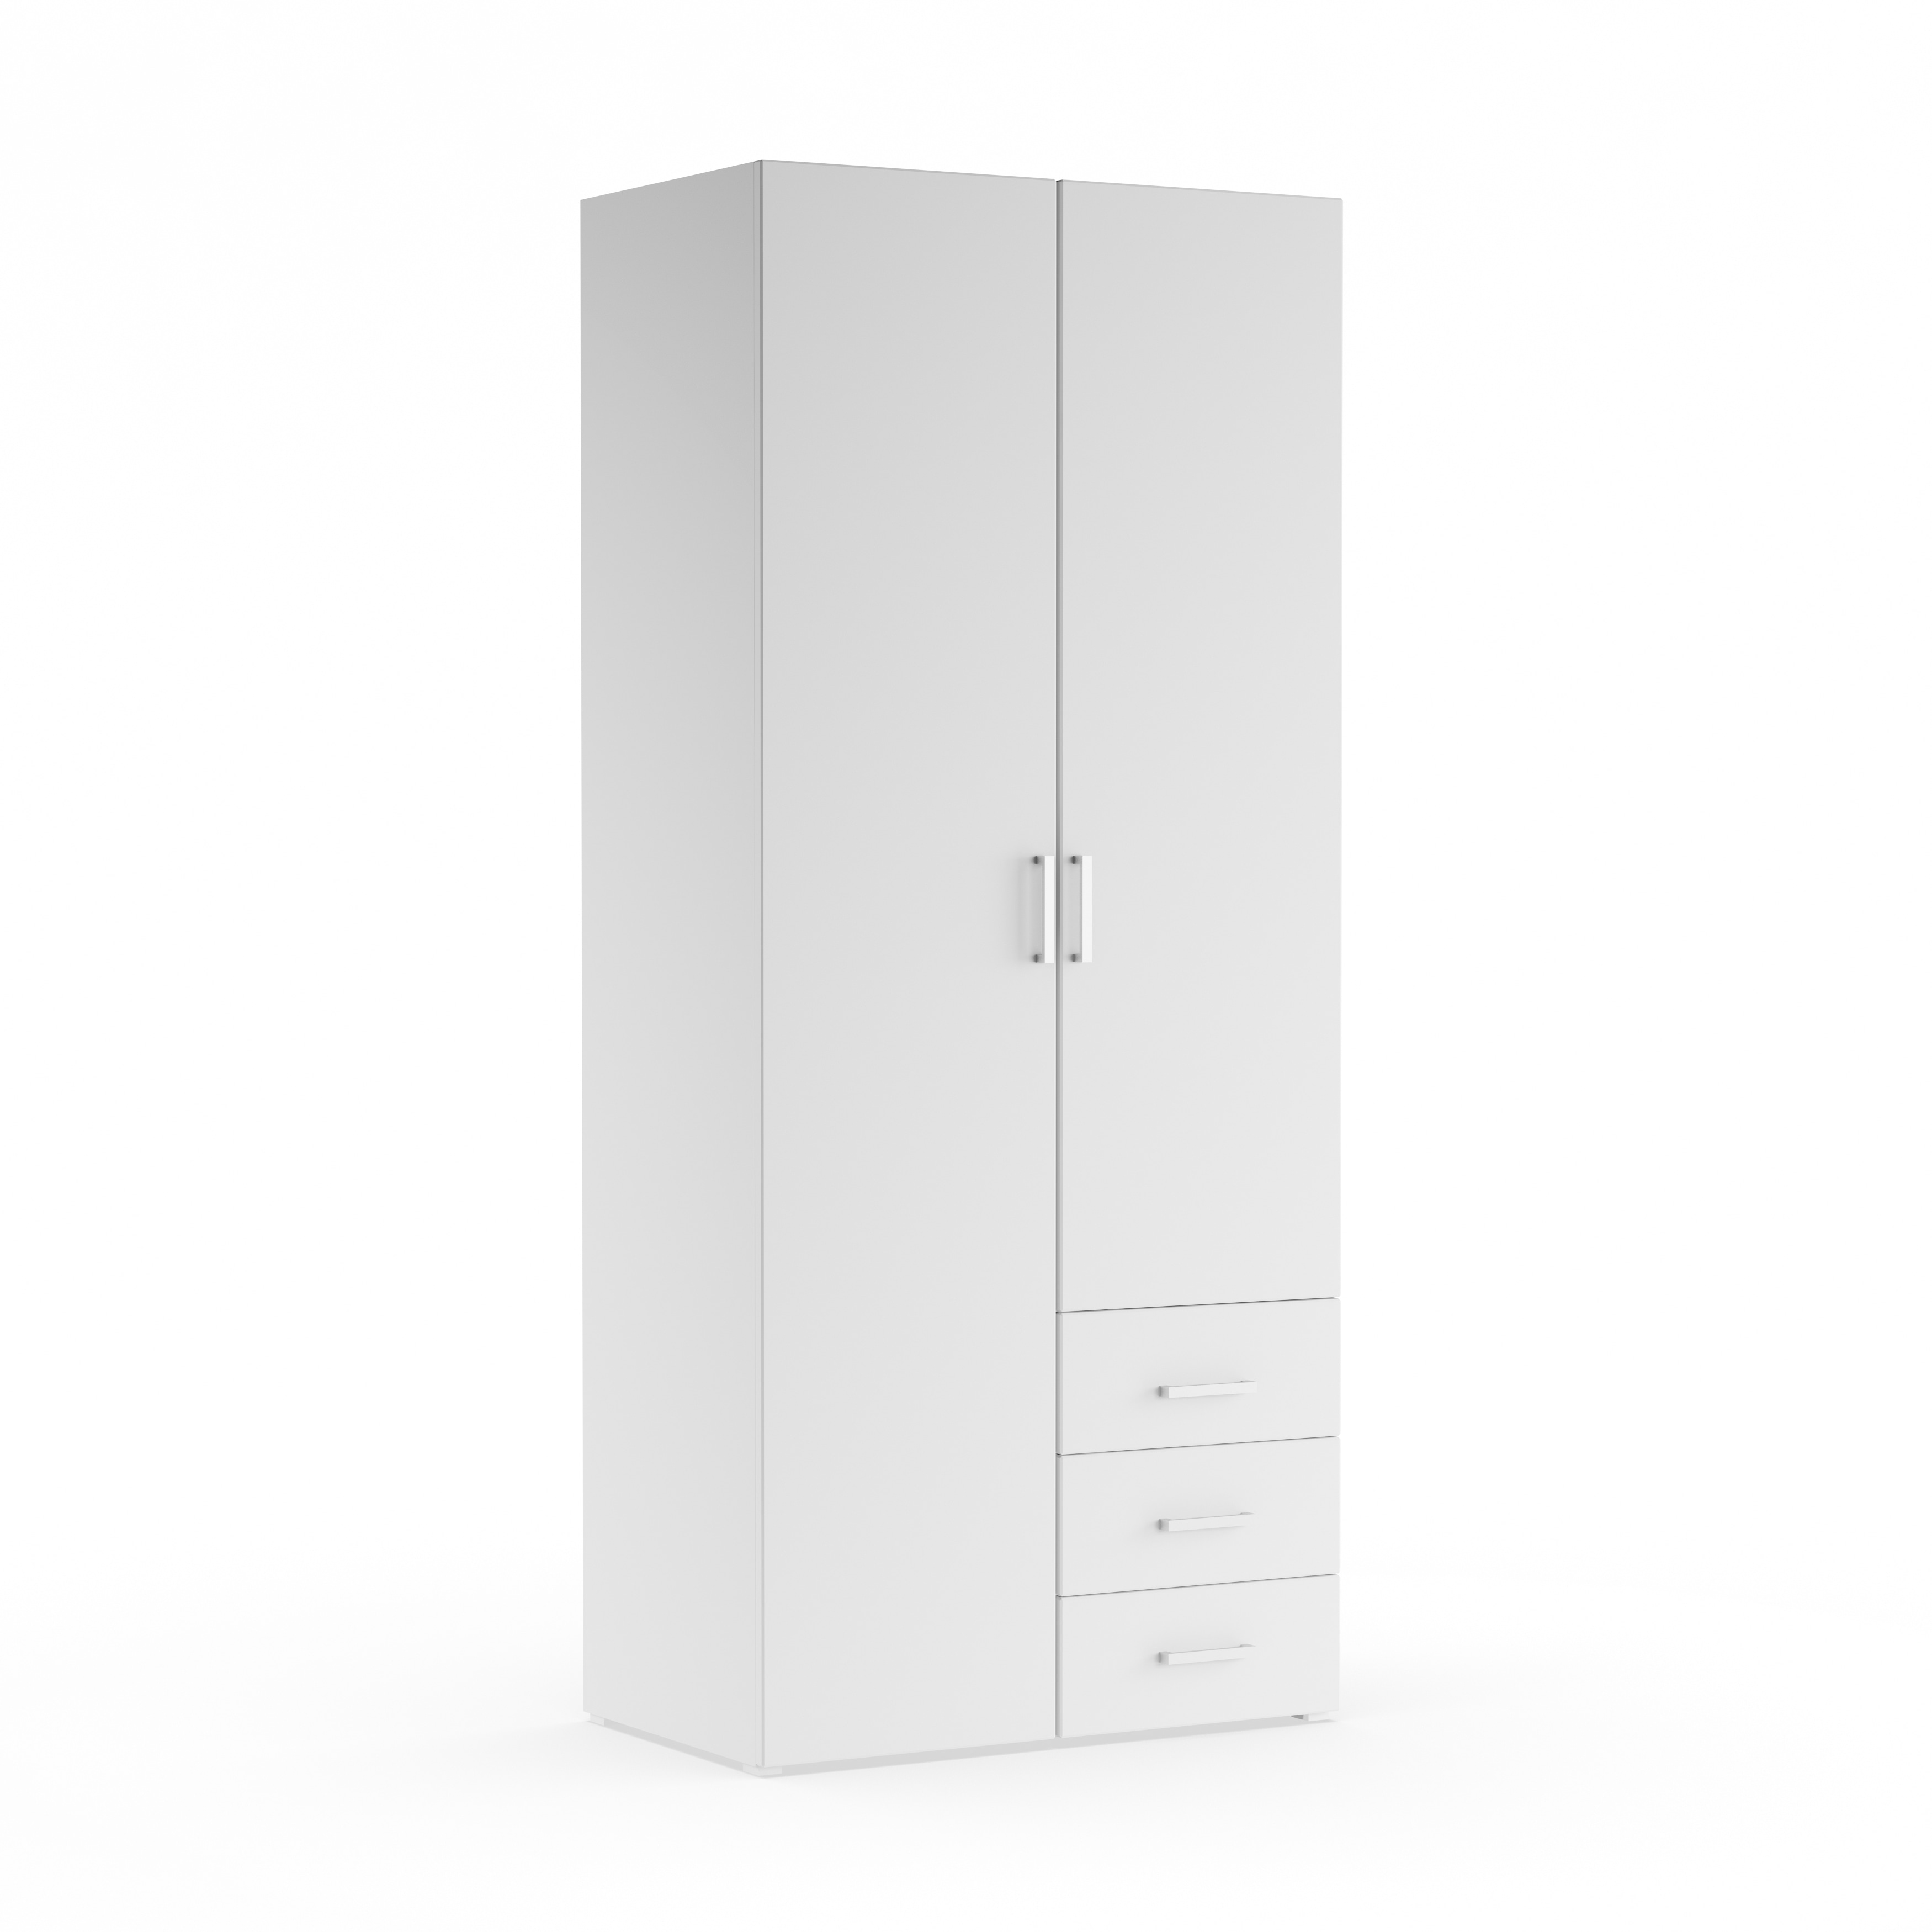 Buy White Armoires Wardrobe Closets Online At Overstock Our